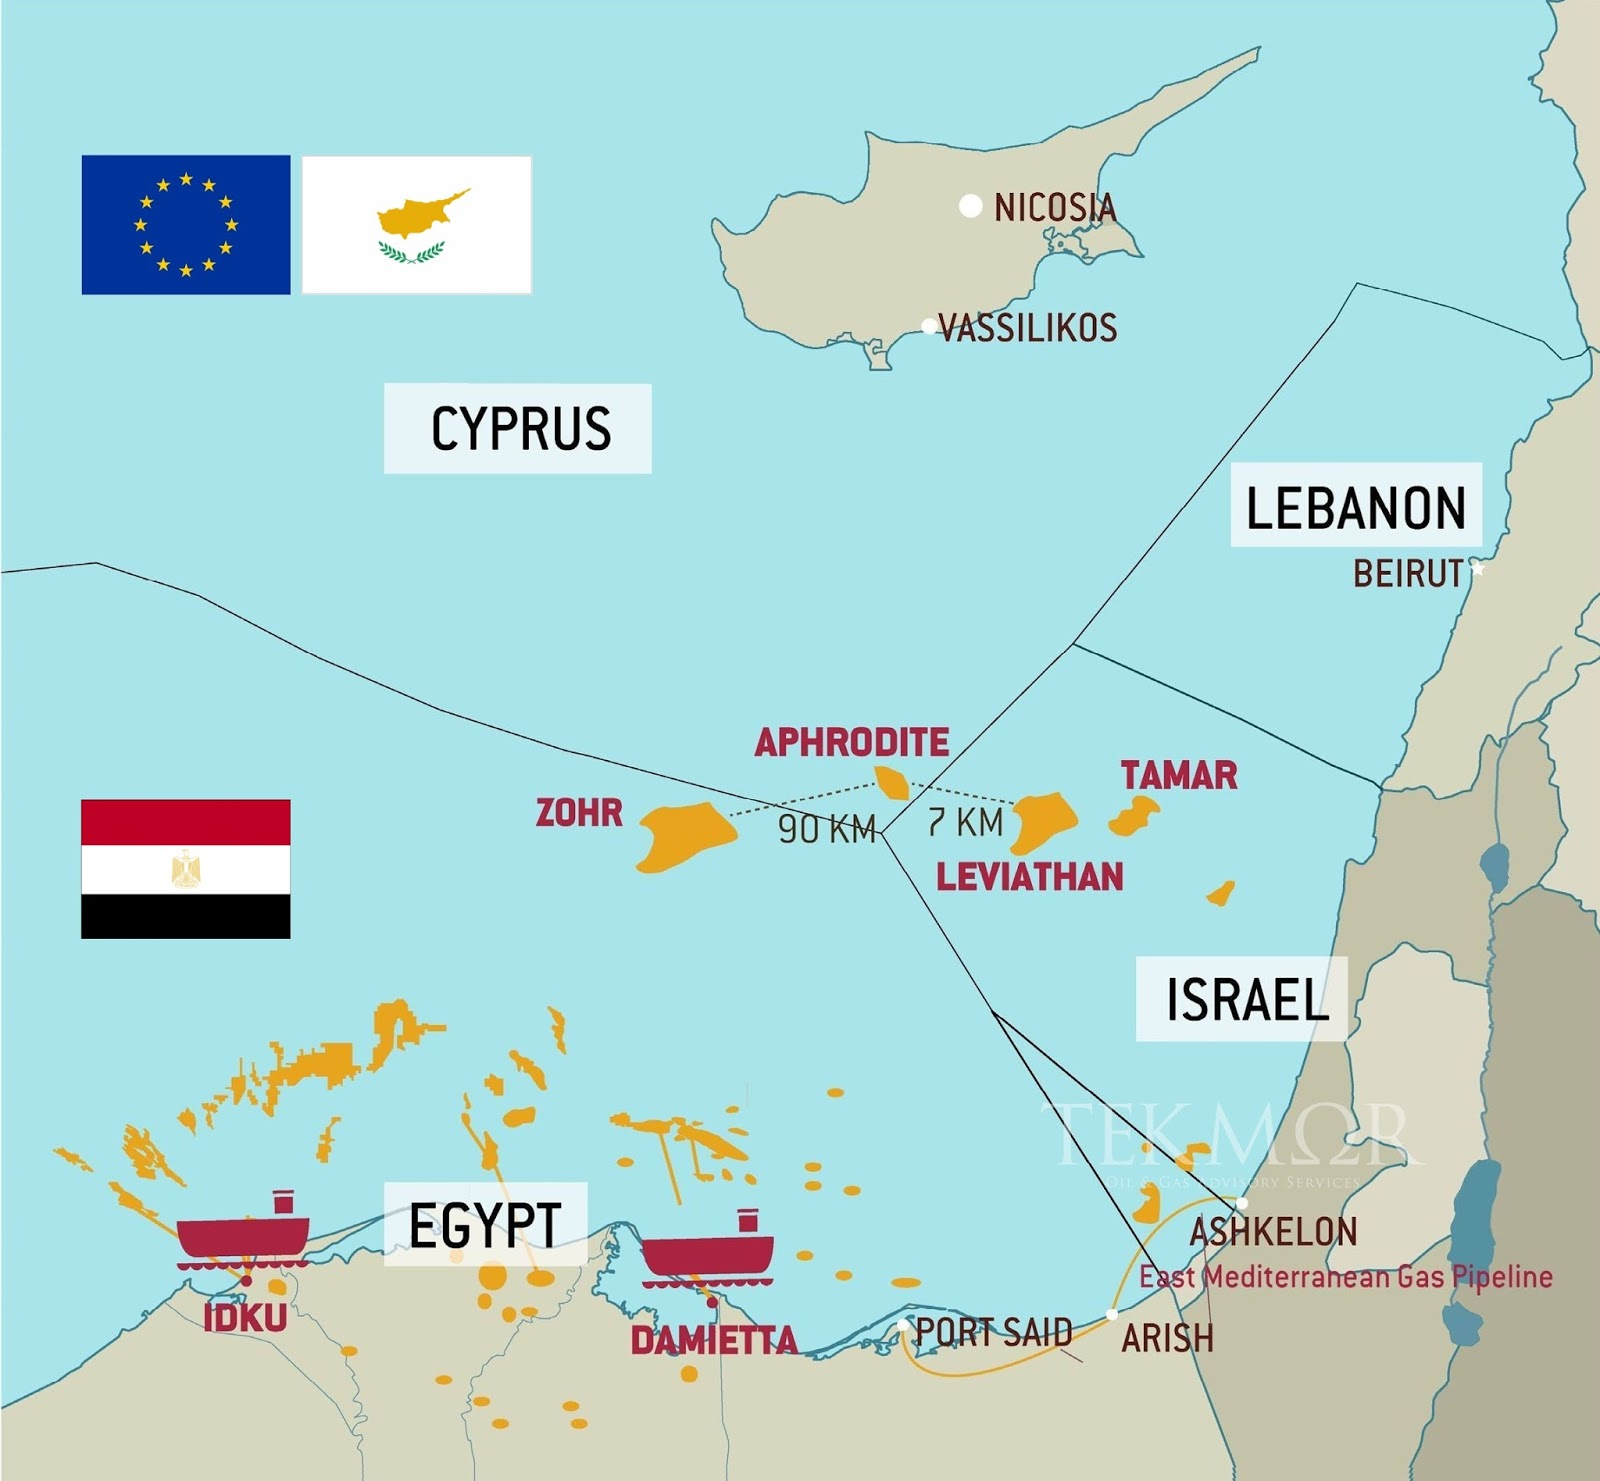 TEKMOR Monitor: Egypt, Cyprus reach preliminary agreement to